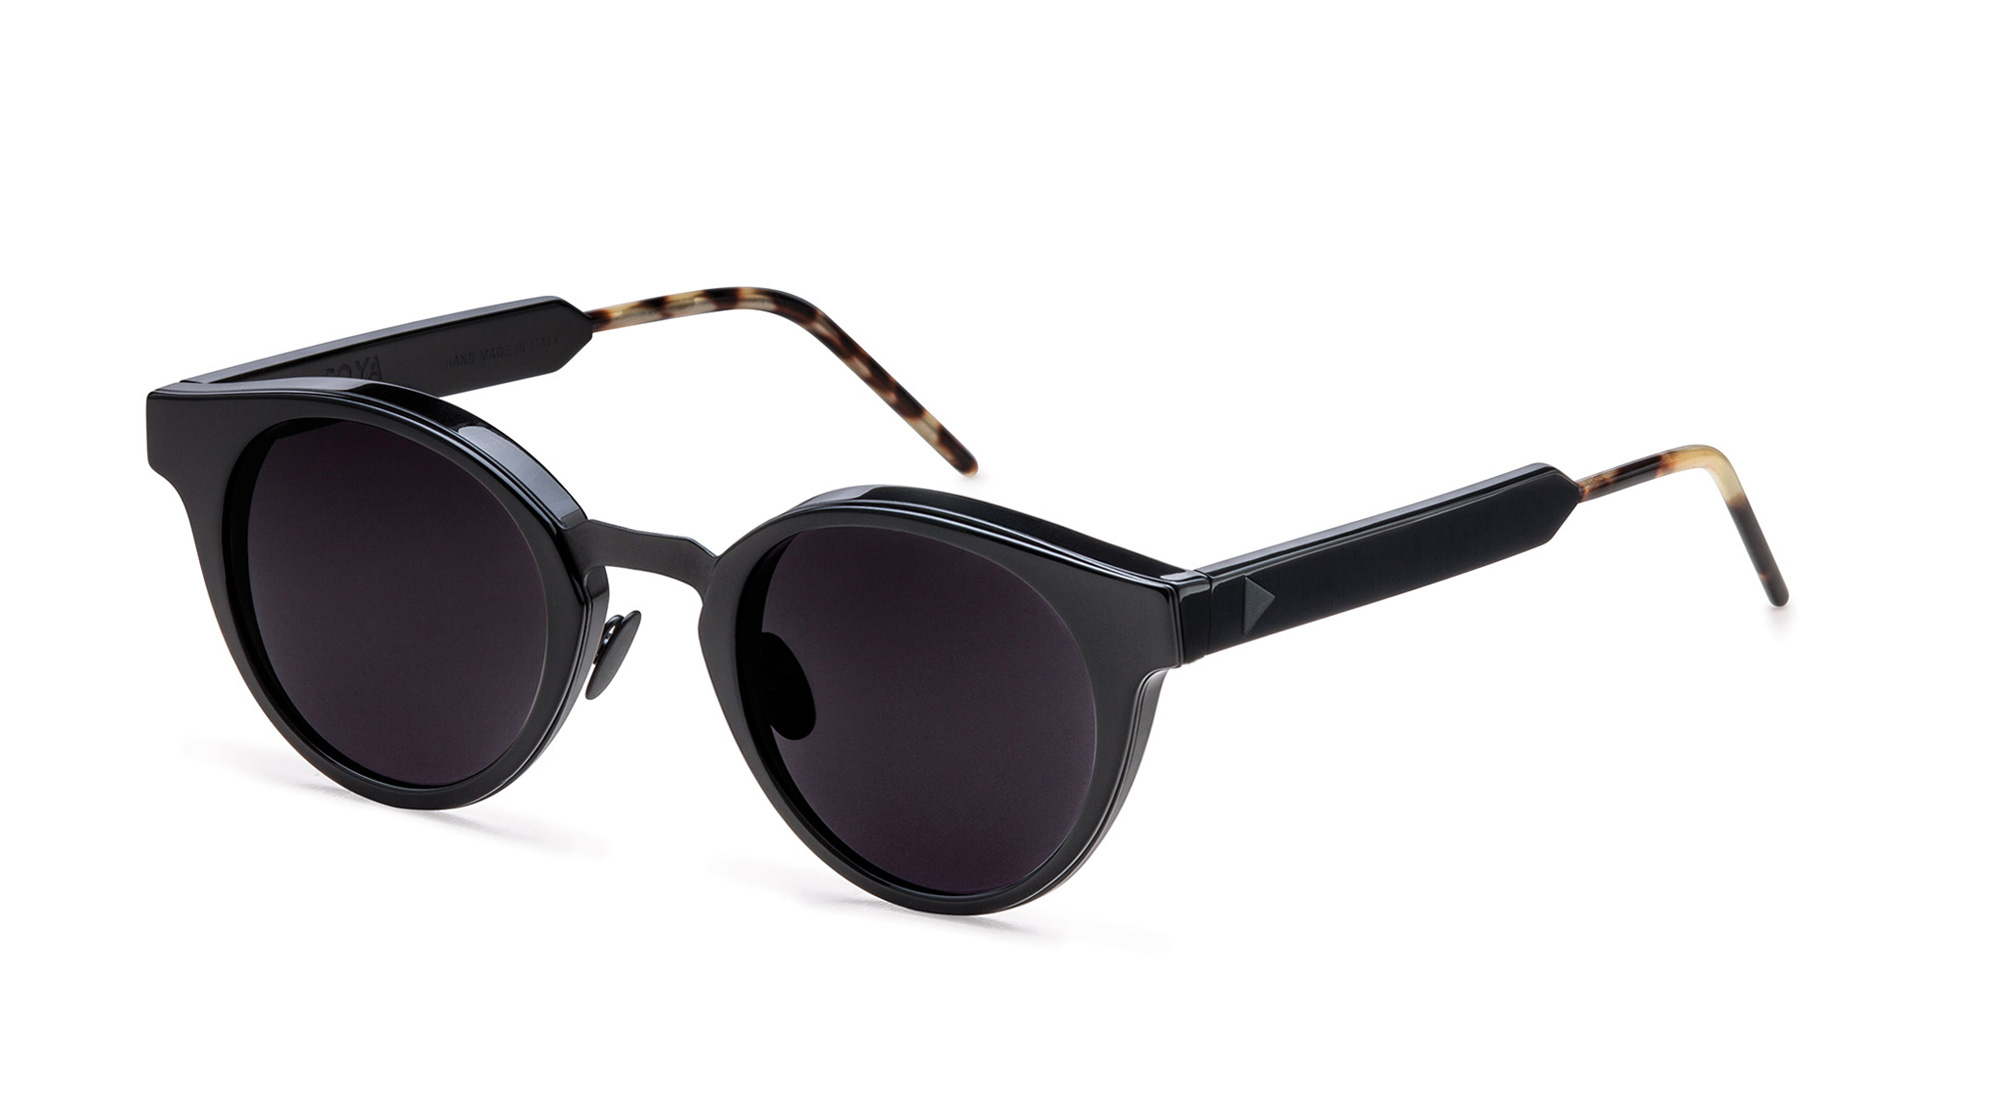 WILLIAMS_Eyewear_SOYA_Black_3-4View